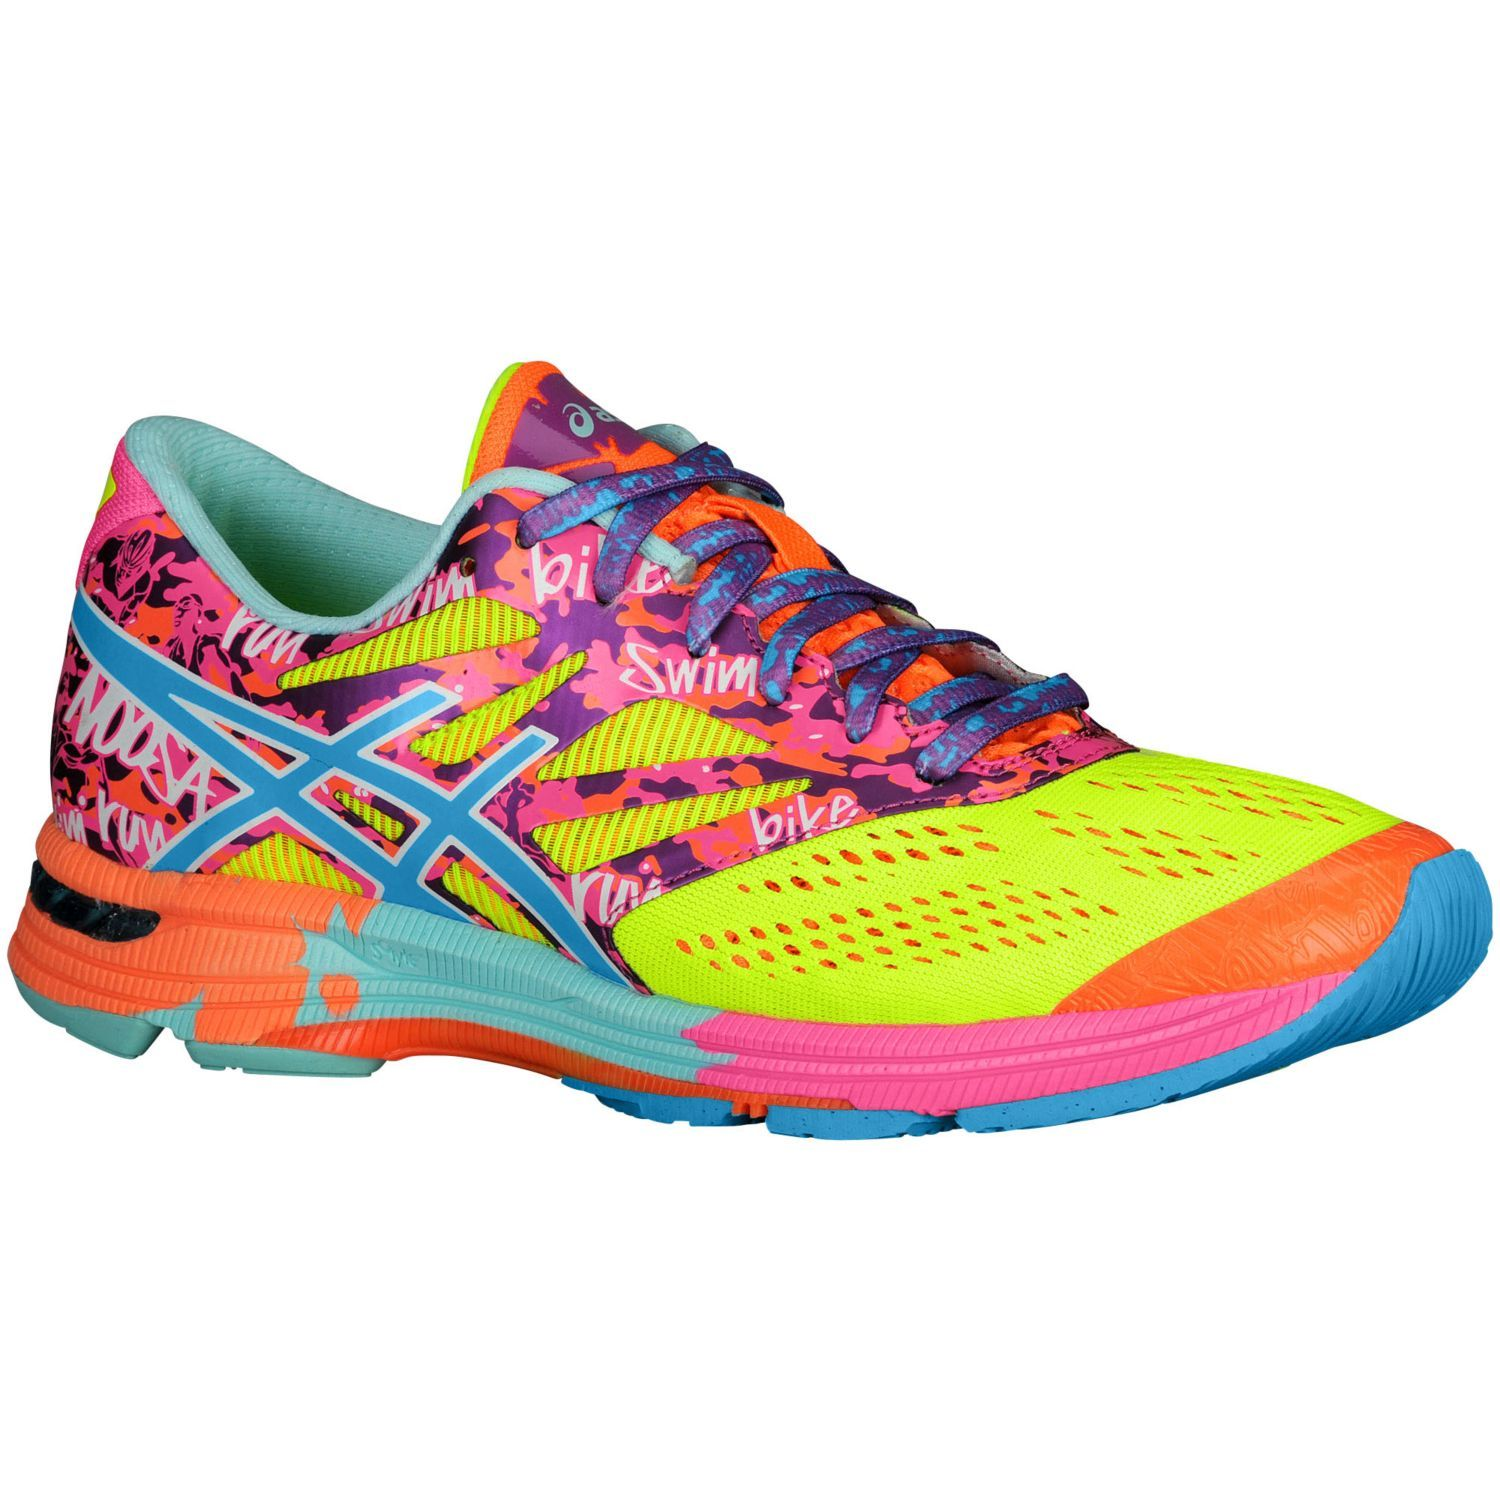 1e7beda702 ASICS® GEL-Noosa Tri 10 - Women s - Running - Shoes - Flash  Yellow Turquoise Flash Pink